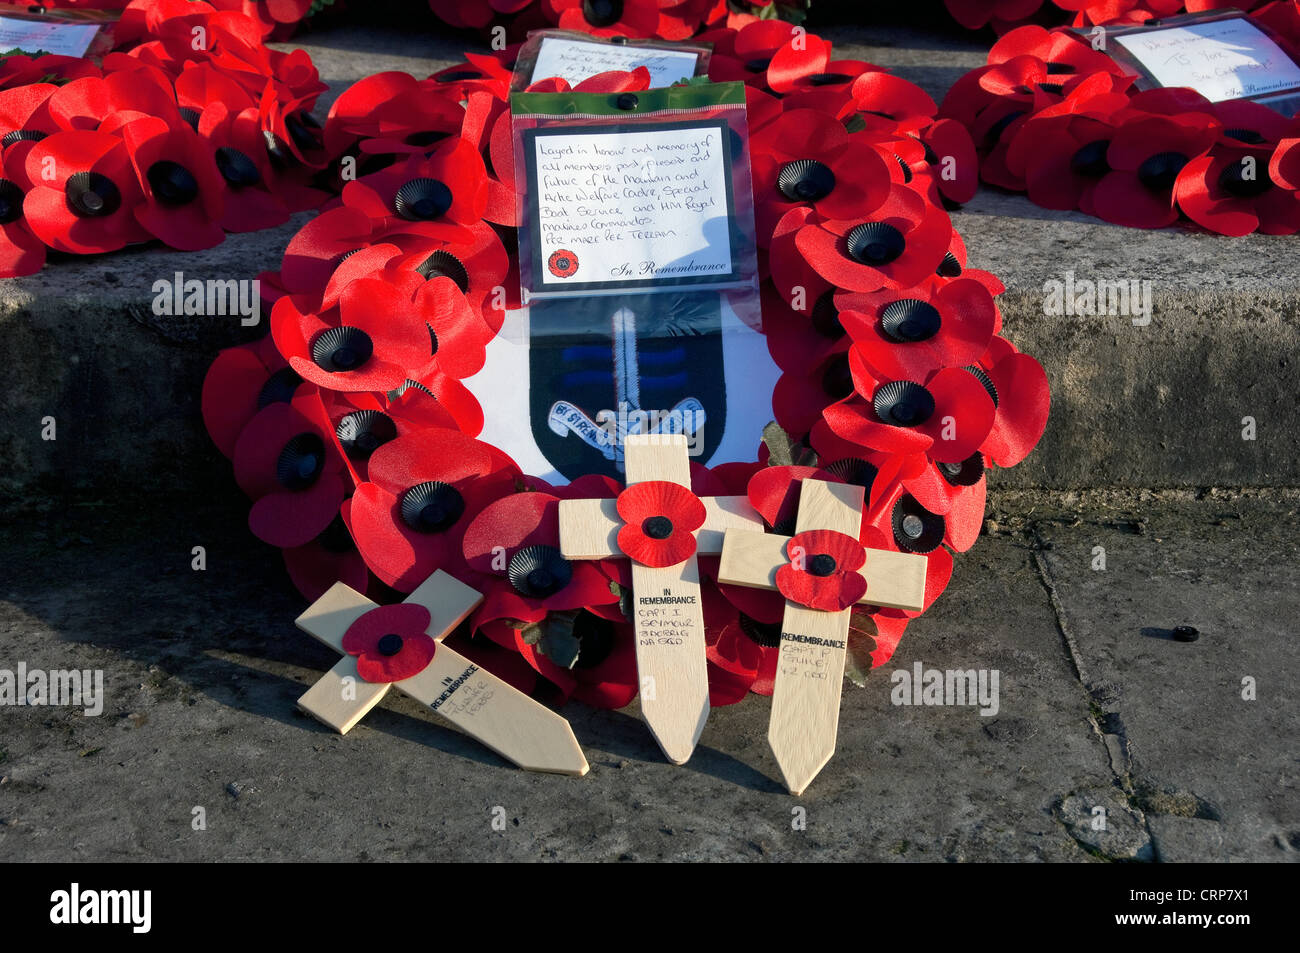 Poppy wreaths and crosses on the York City War Memorial in the Memorial Gardens. - Stock Image